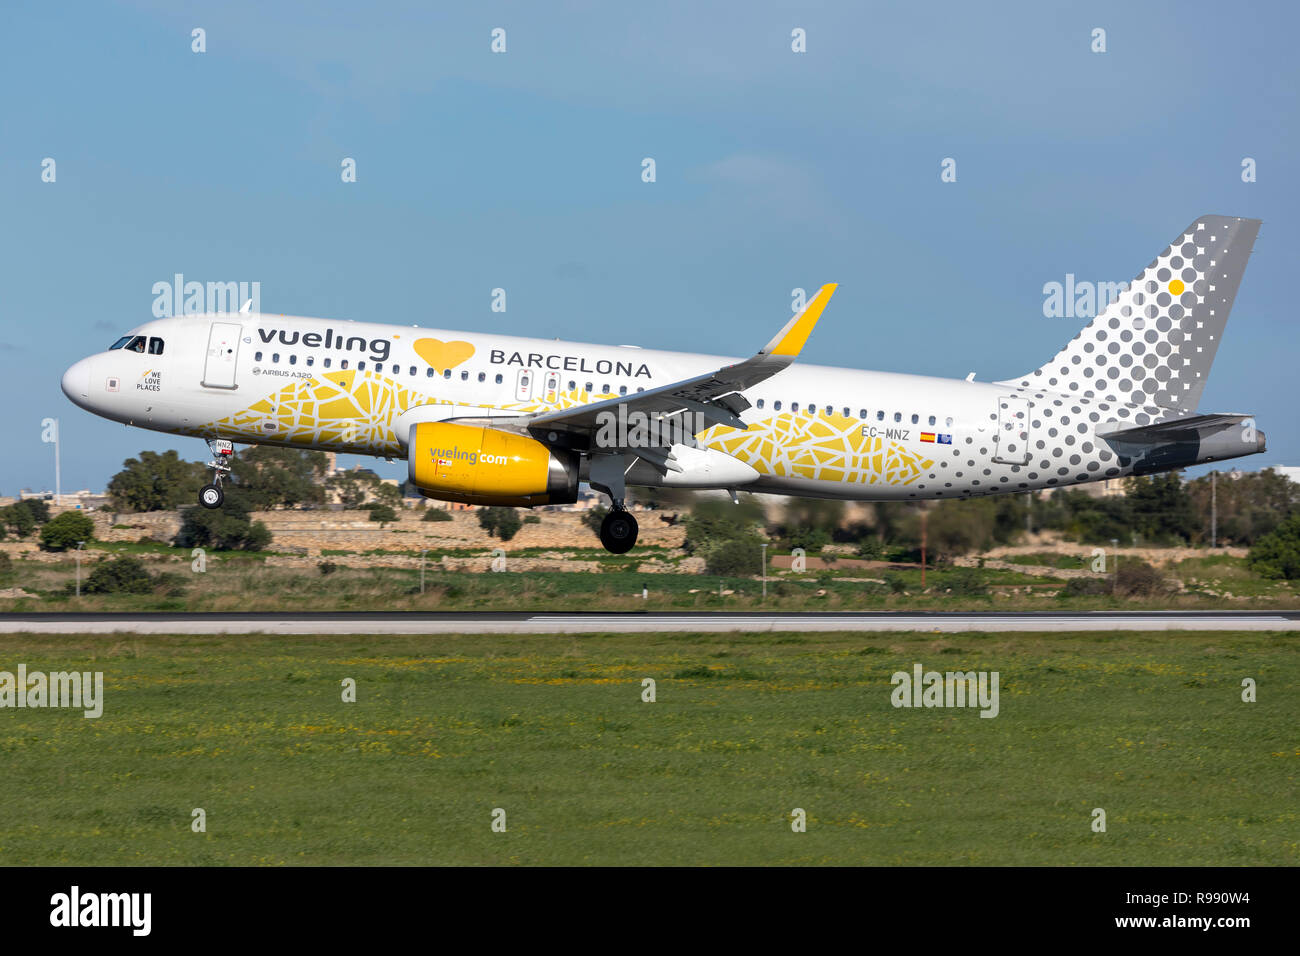 Vueling Airlines Airbus A320-232 (Reg: EC-MNZ) with special livery landing runway 31. - Stock Image